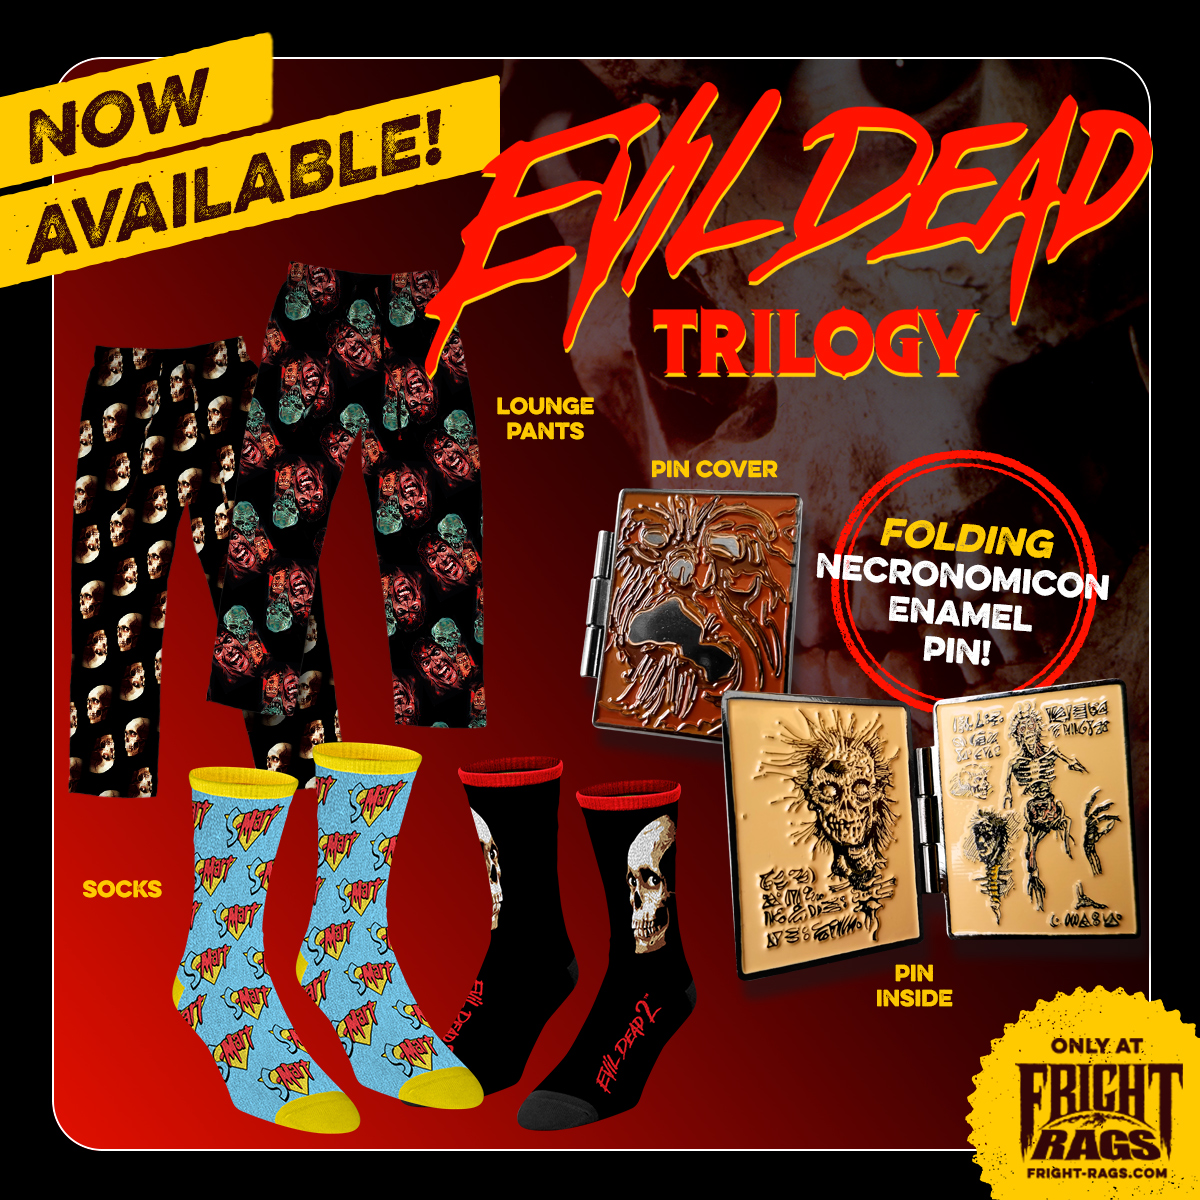 Fright-Rags Debuts Exclusive EVIL DEAD Merchandise!